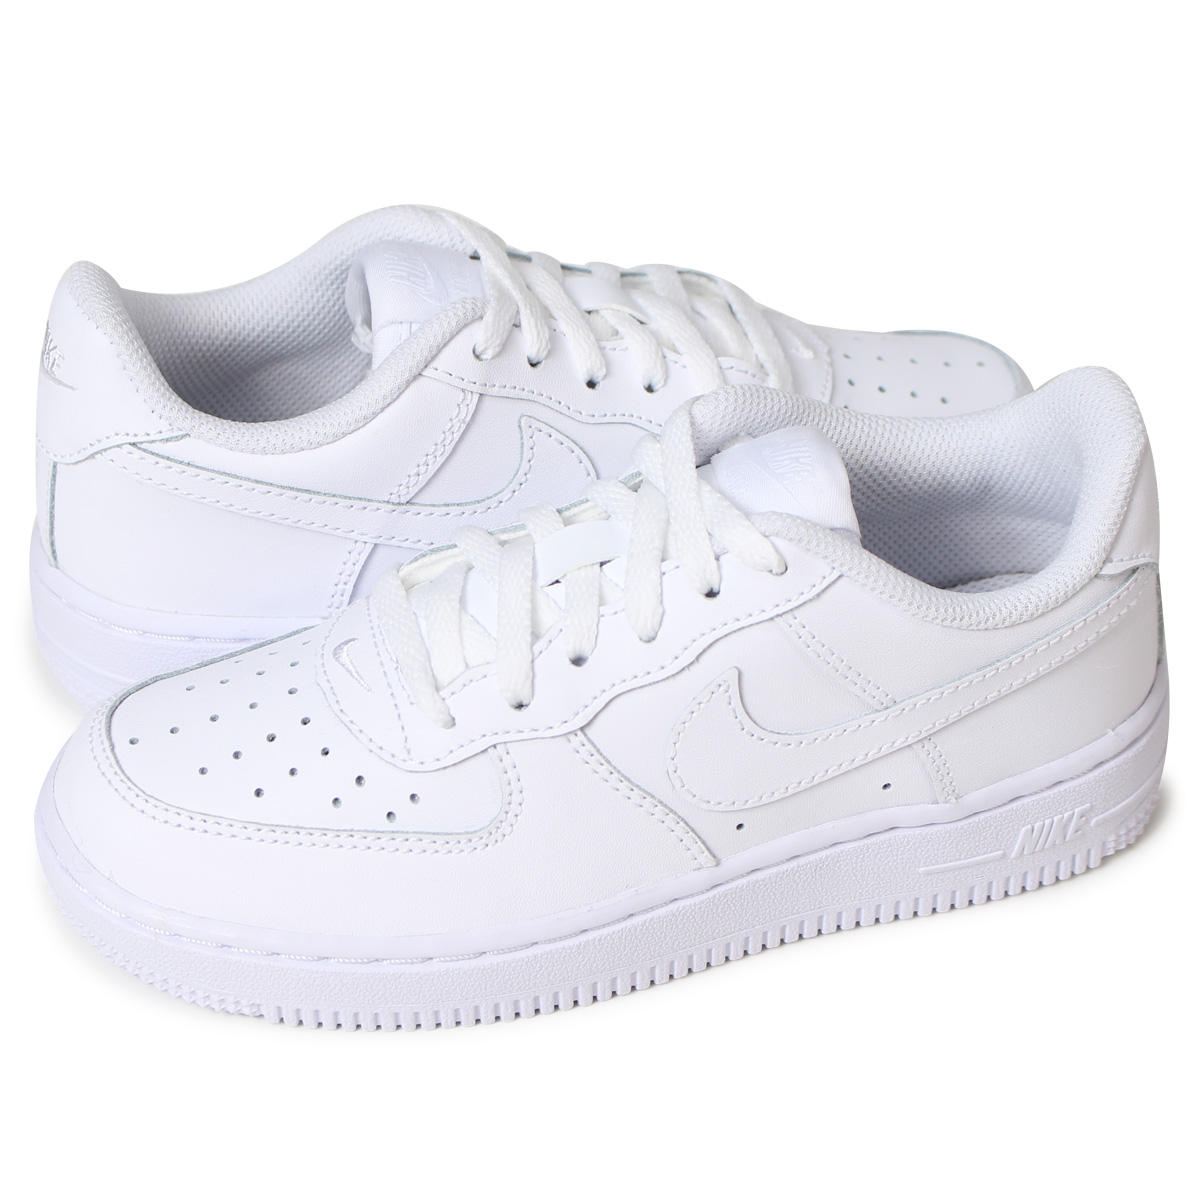 c1076605af62b Whats up Sports: NIKE AIR FORCE 1 PS Nike air force 1 kids sneakers ...